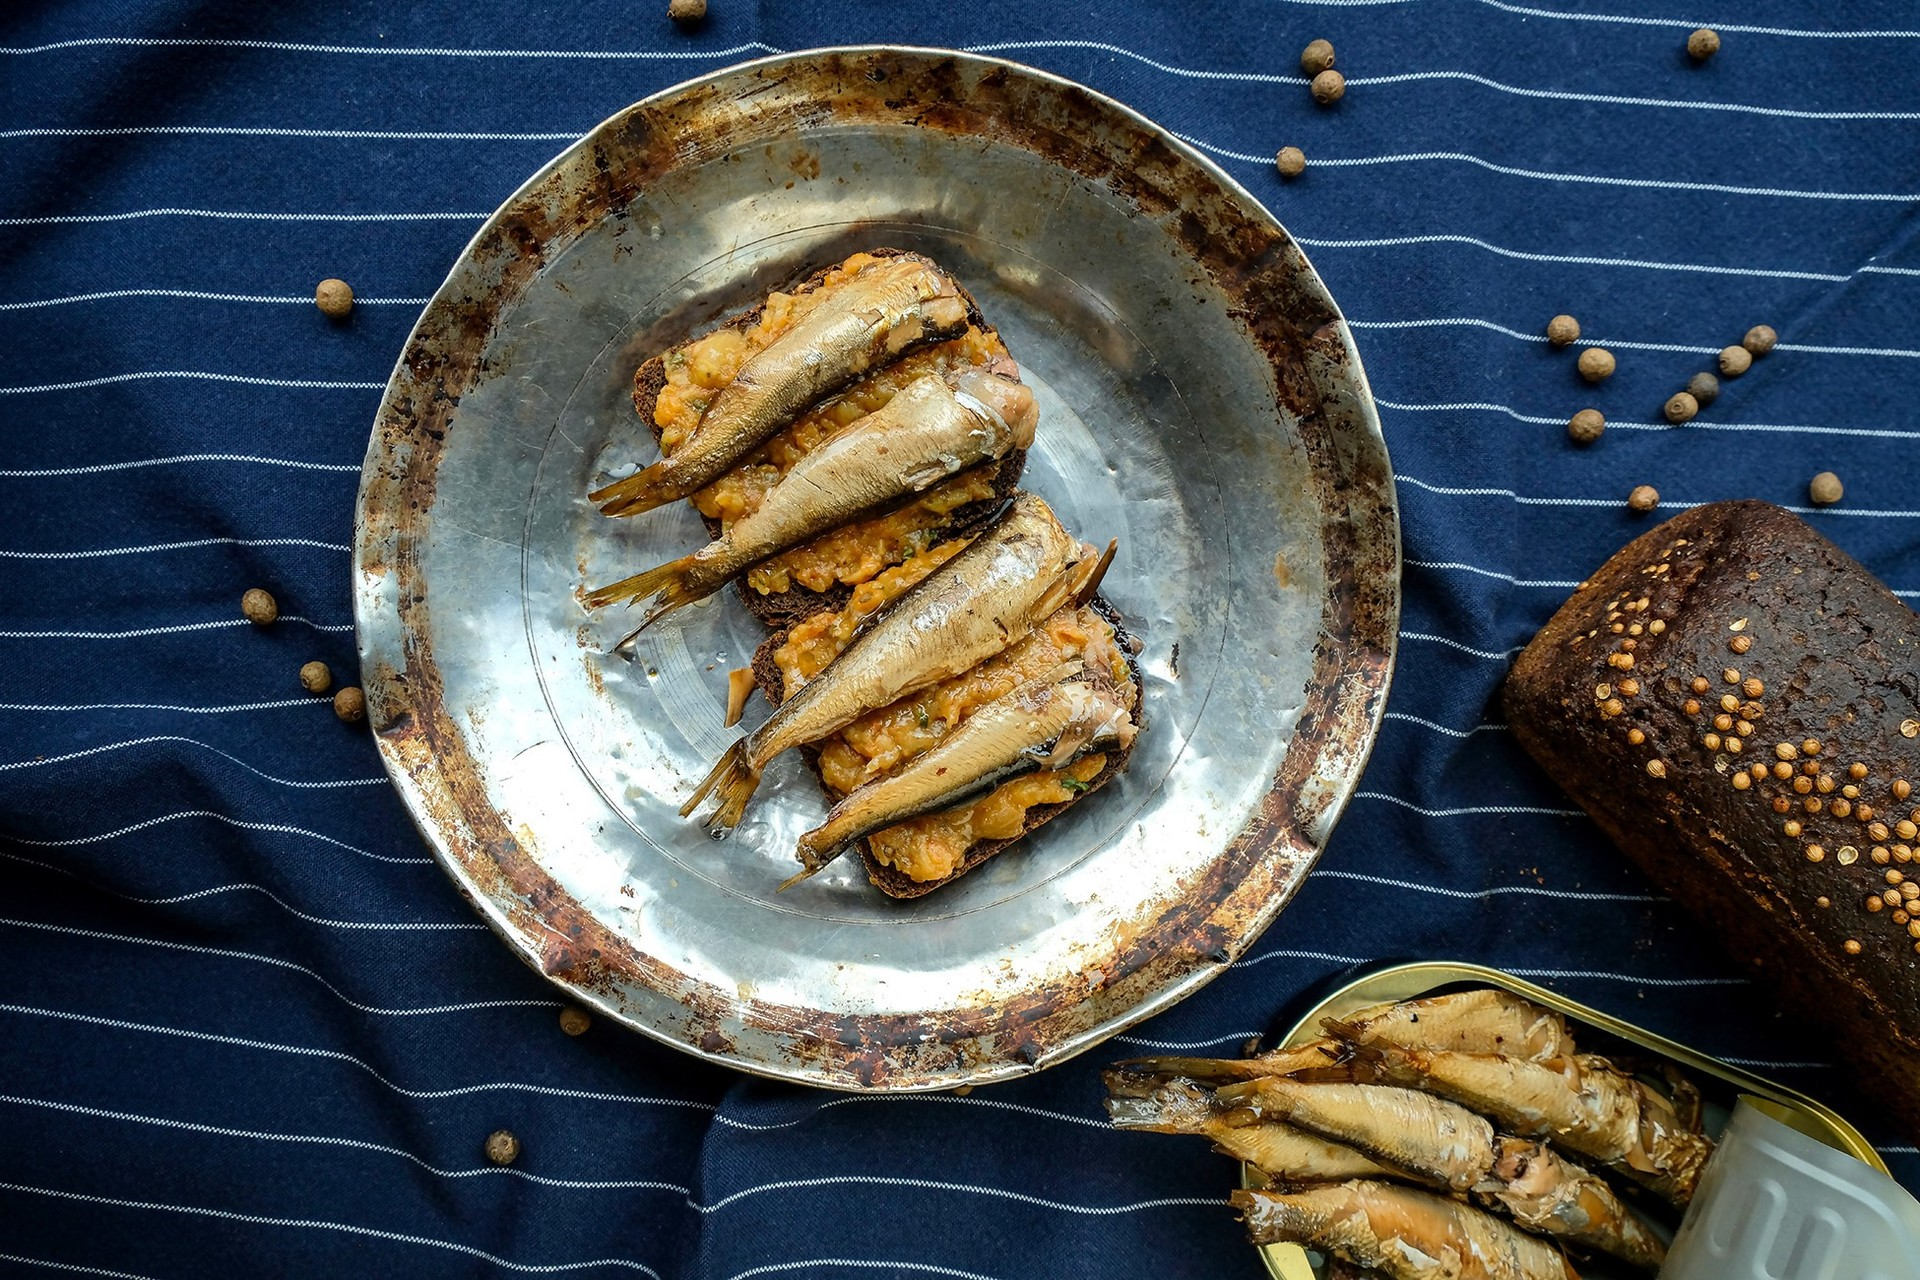 Sandwiches with sprats, salty and oily